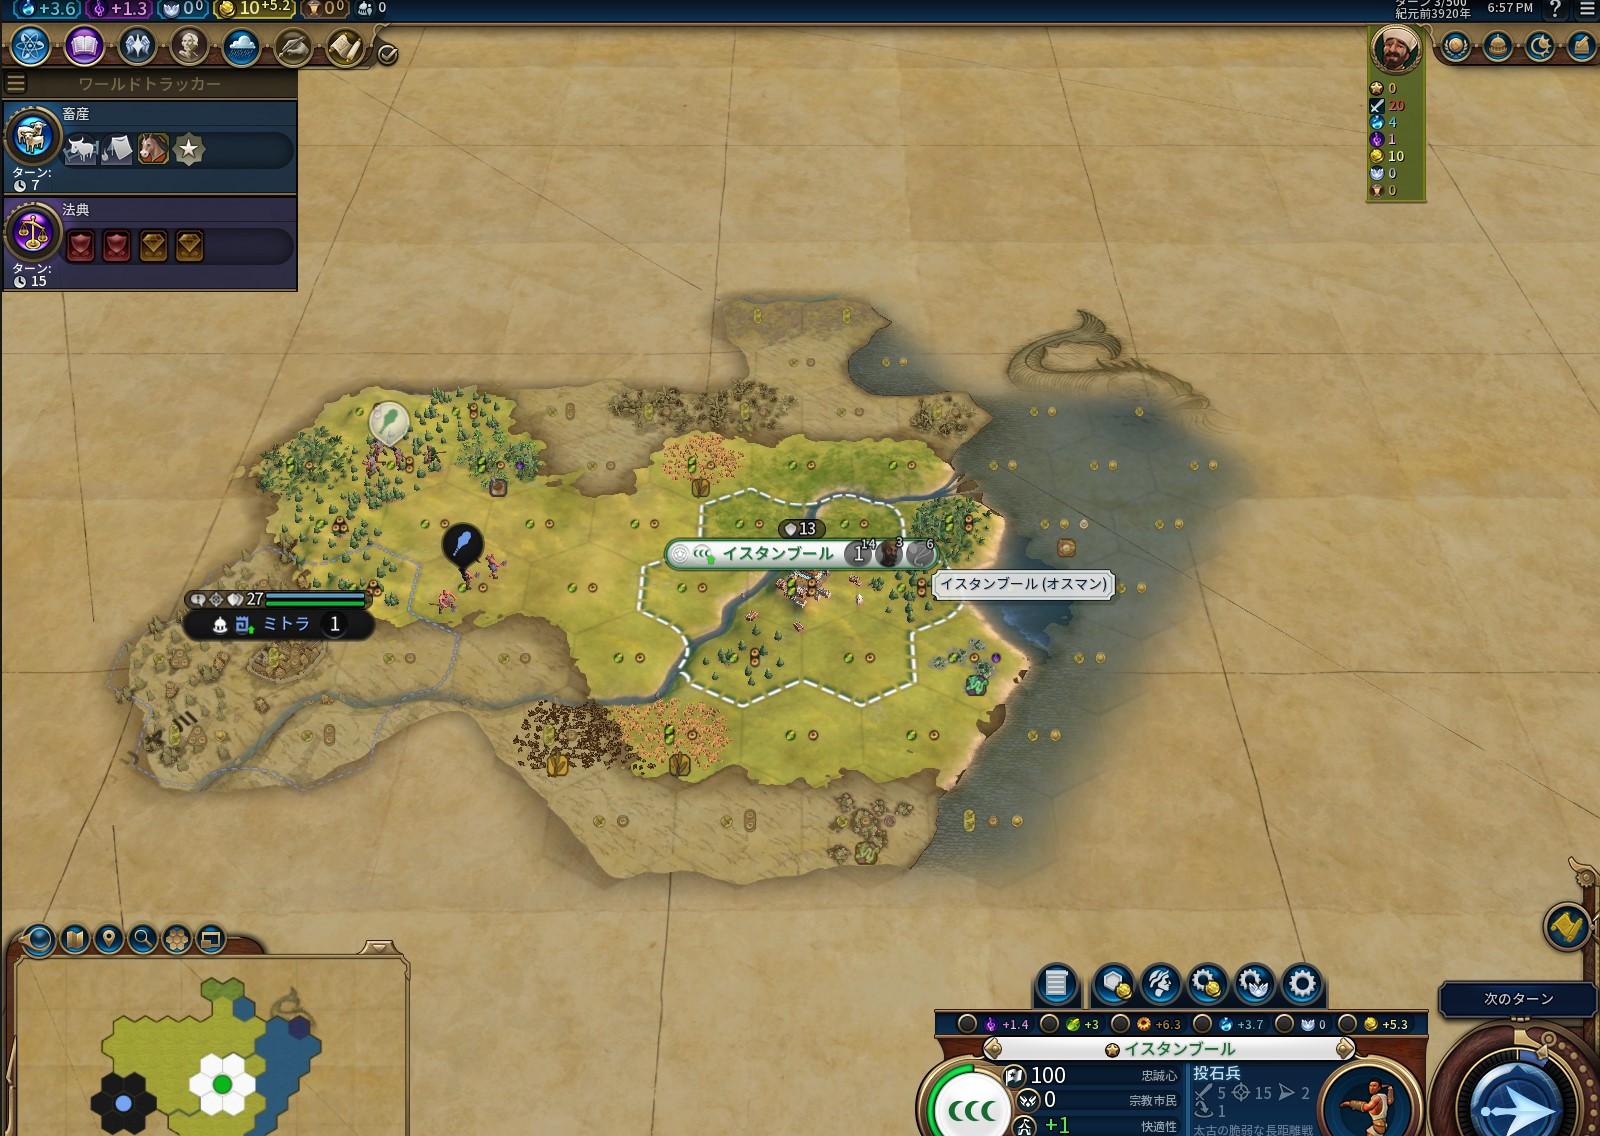 Sid Meier's Civilization VI (DX11) 2020_08_14 18_57_33.jpg